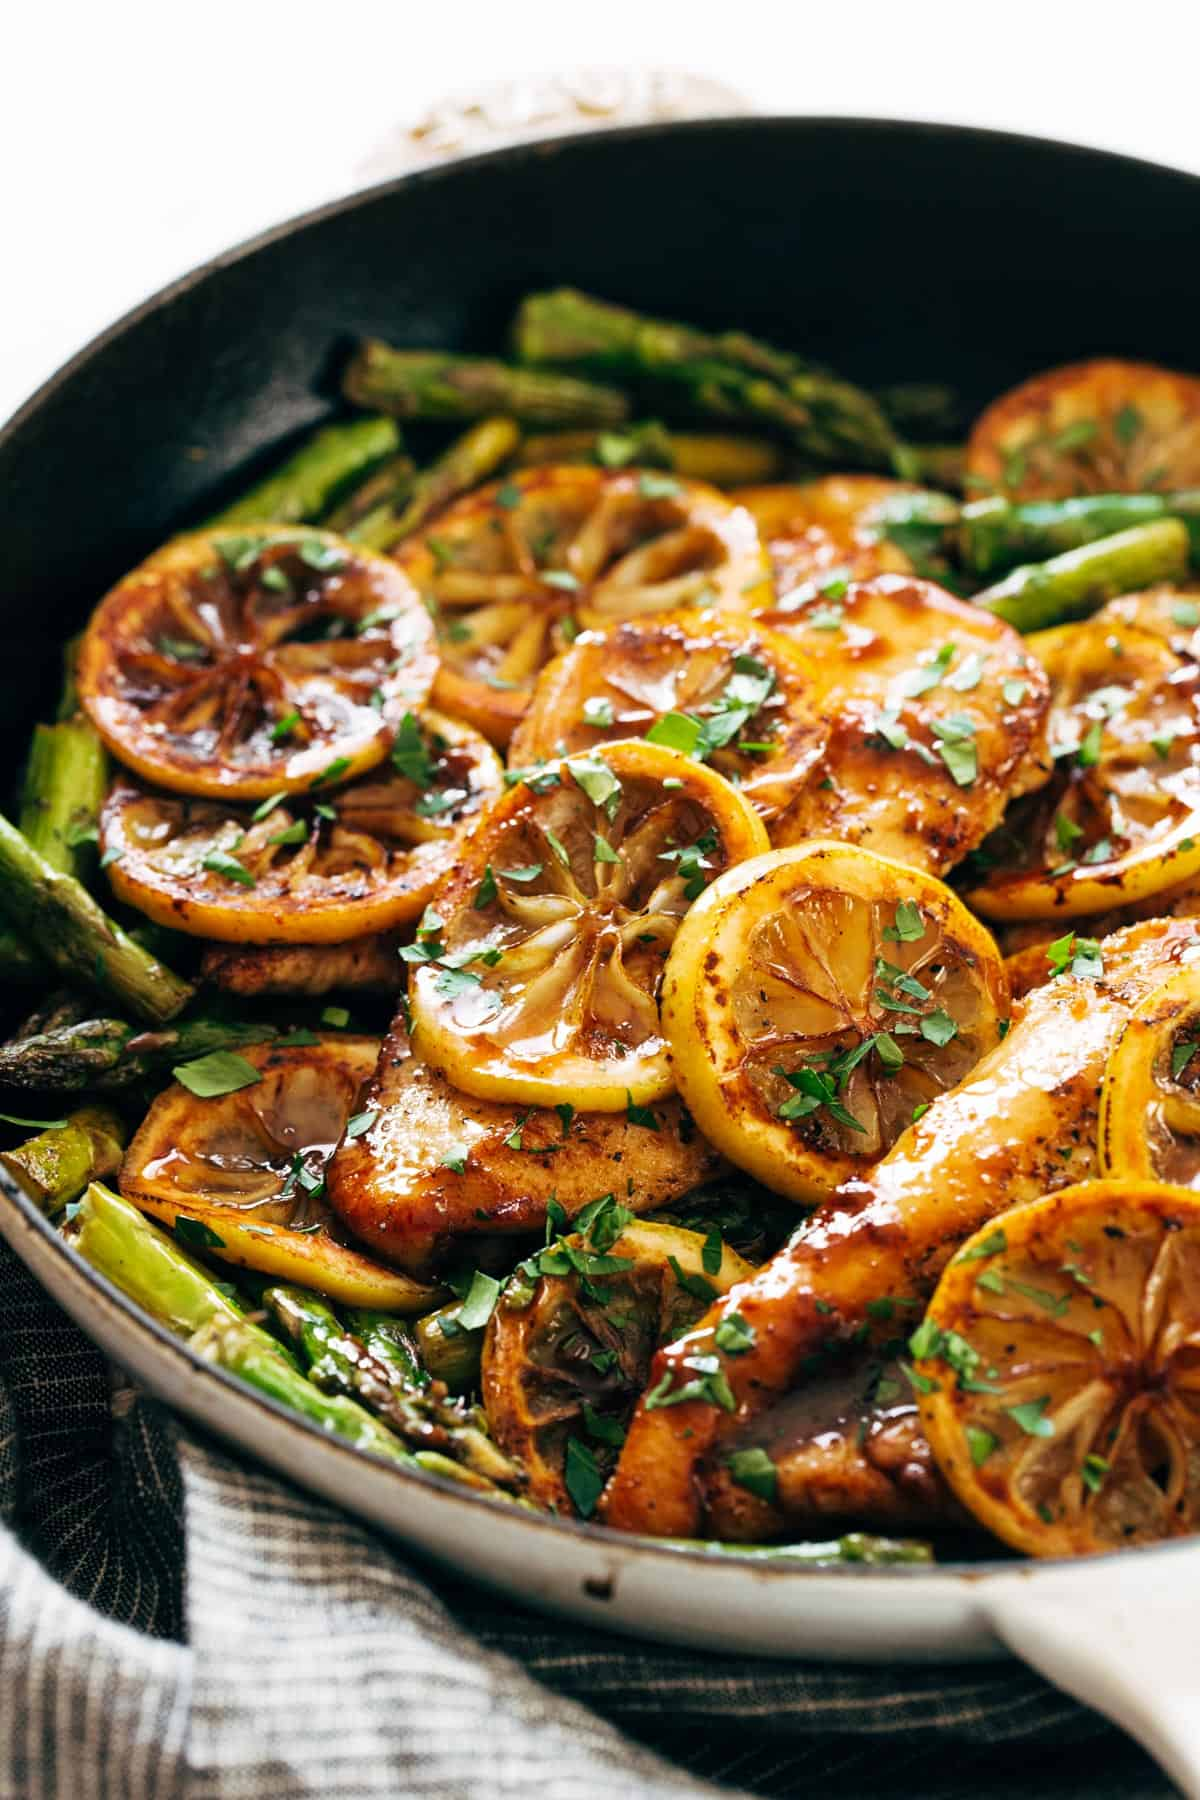 Lemon chicken with asparagus in a pan